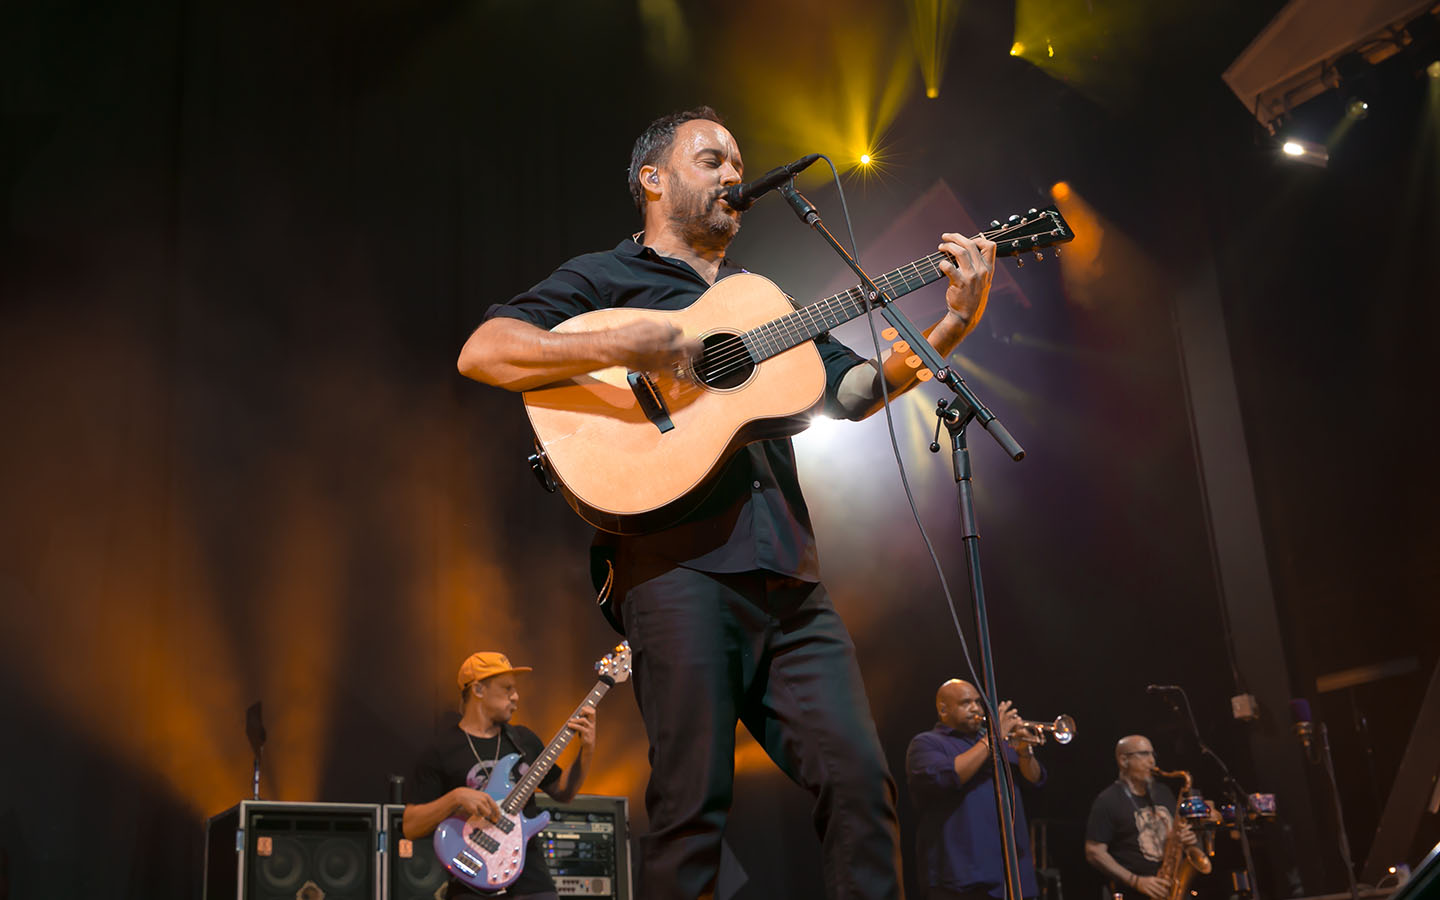 Dave Mathews Band concert photo 1